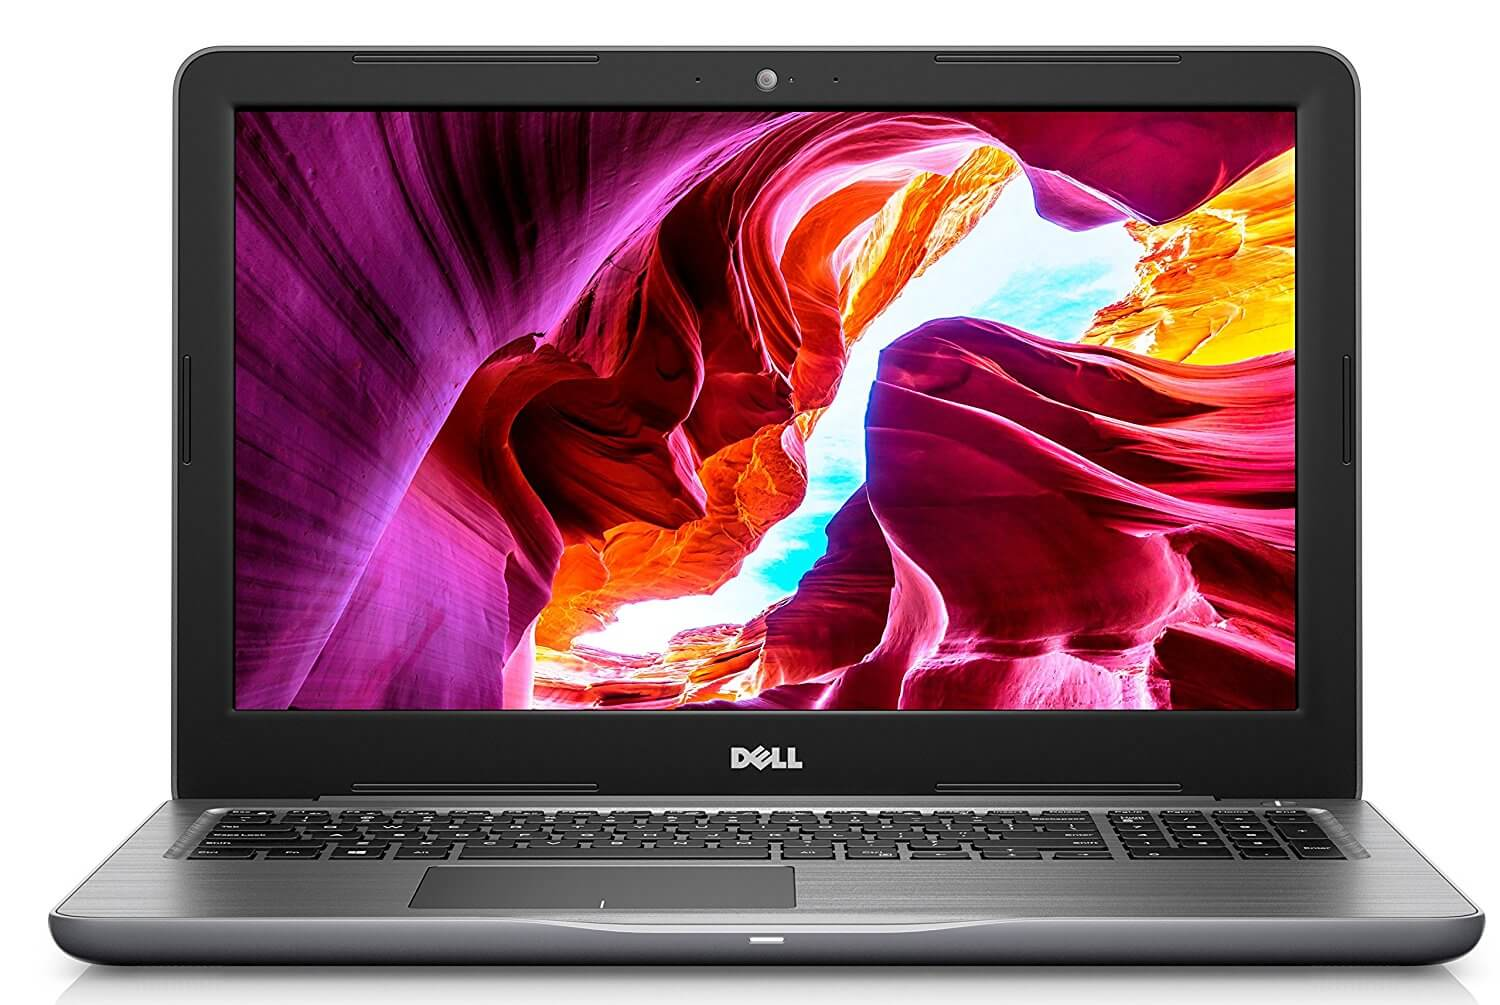 Dell Inspiron 15 5000 15.6-Inch Notebook Gaming Laptop (£699) with 256GB SSD, AMD R7 4 GB Graphics Card